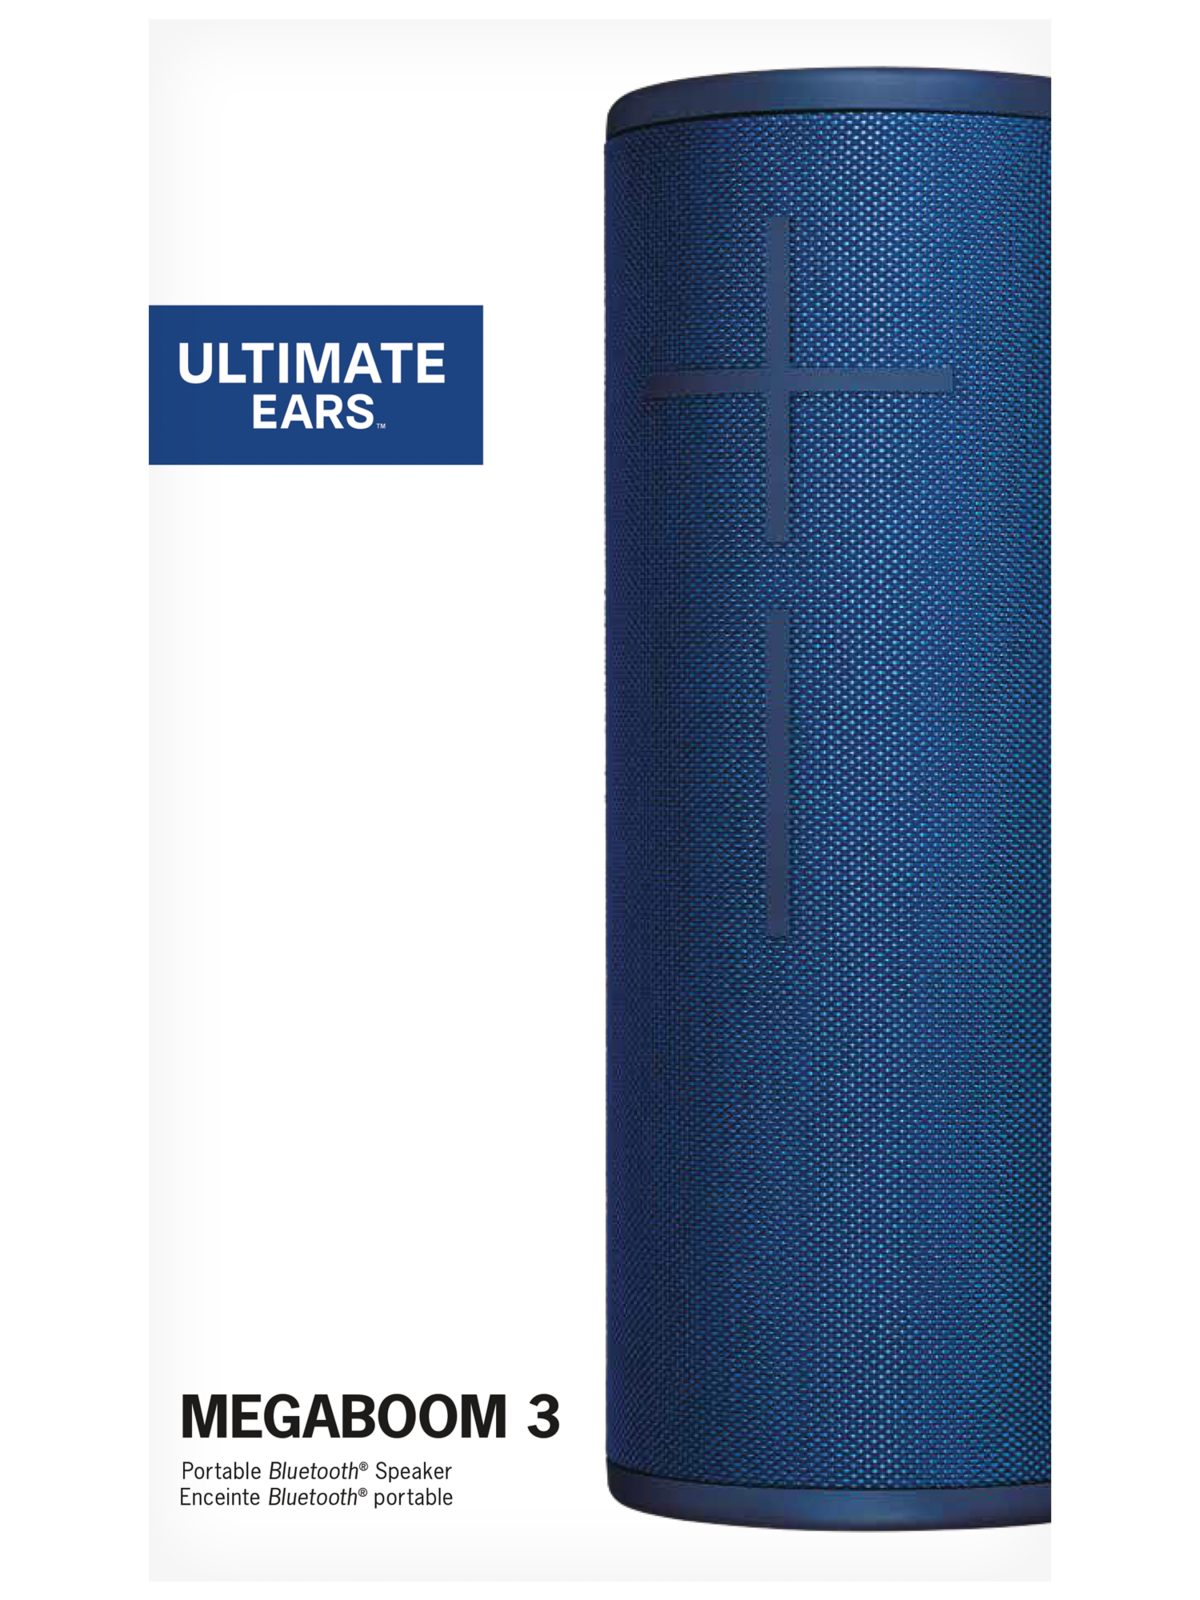 MEGABOOM 3 Bluetooth Speaker | Ultimate Ears Speaker with